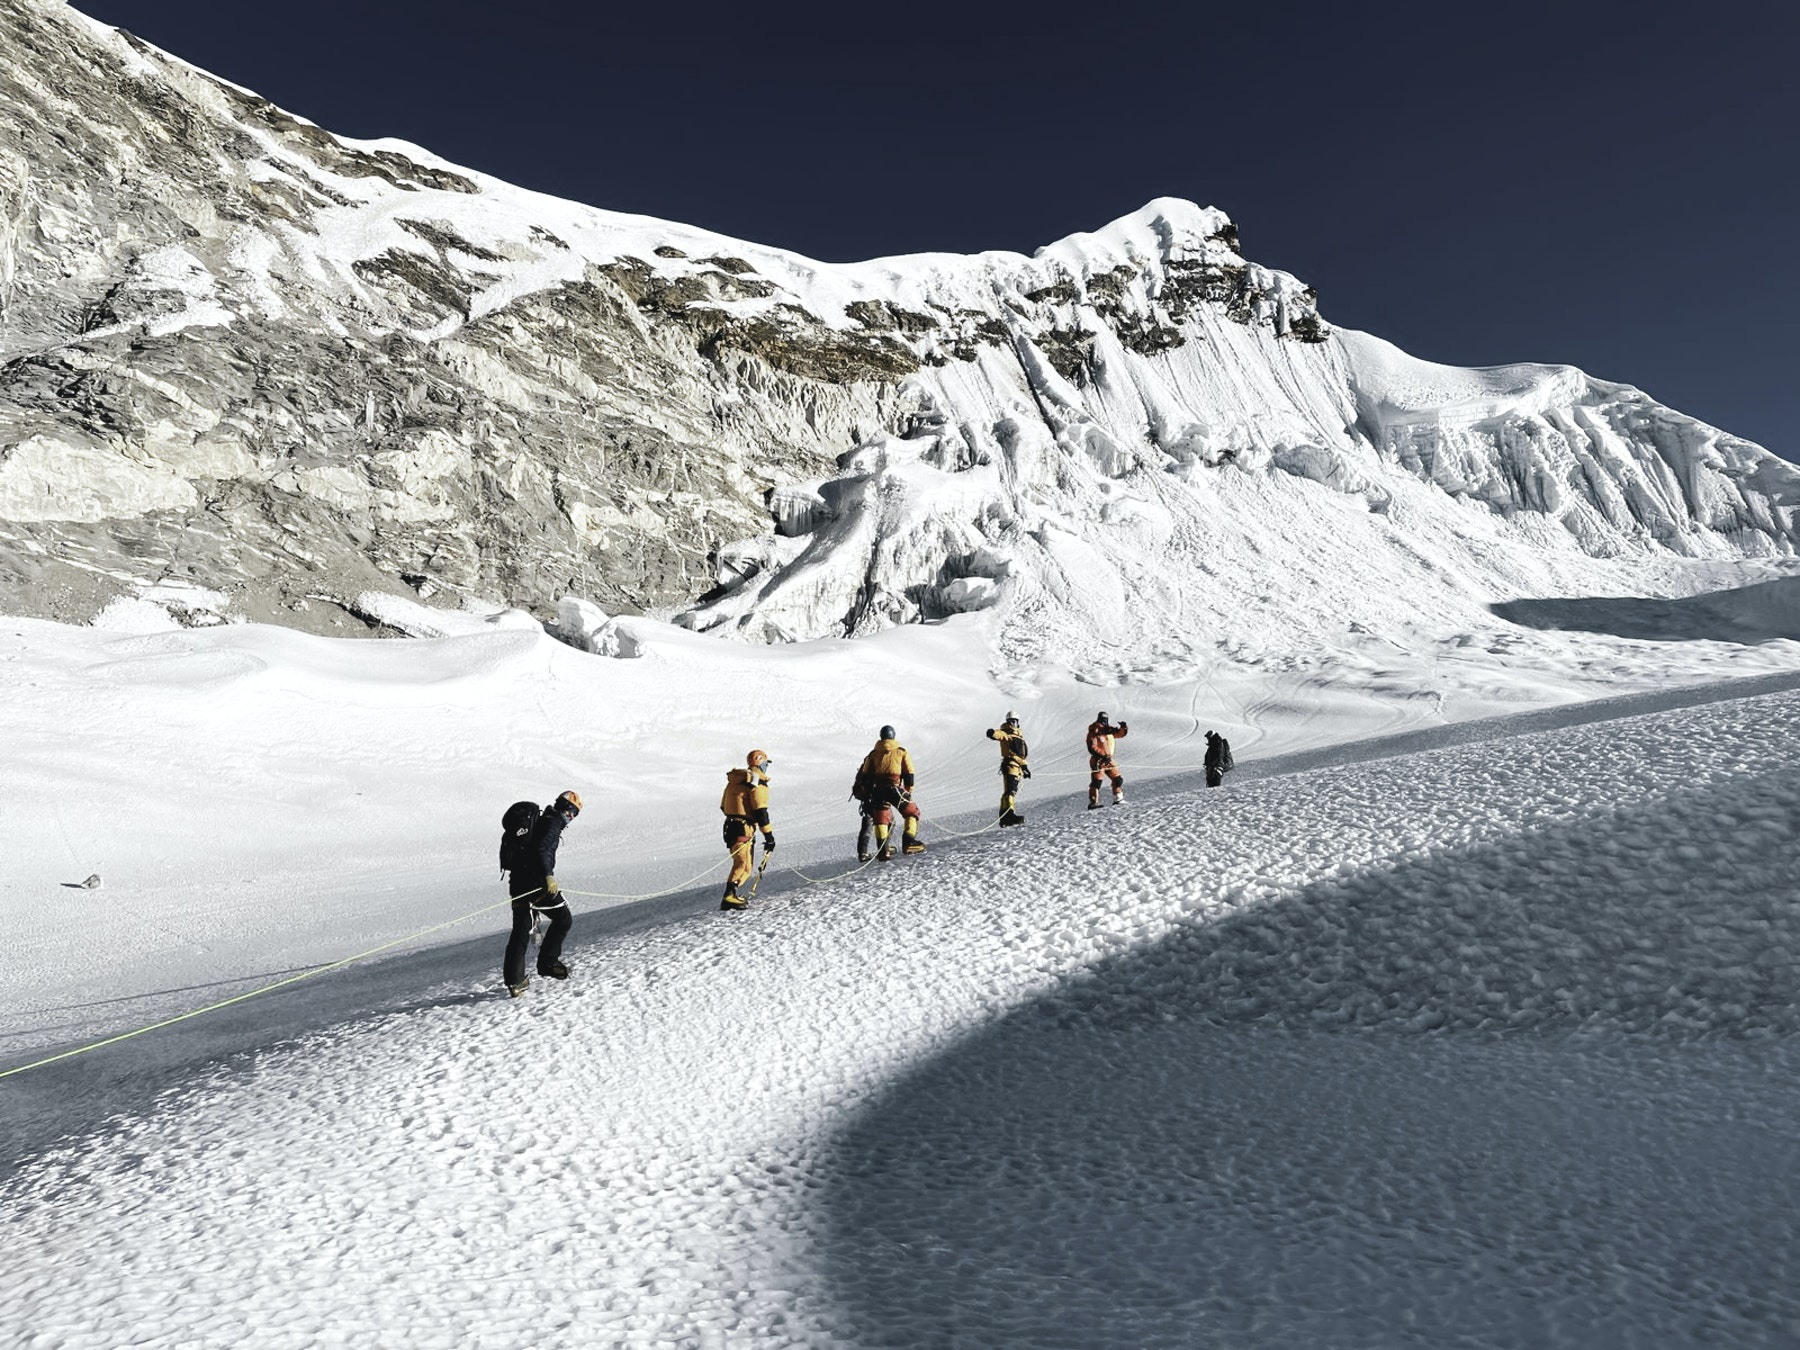 Climbers on the way to the summit of Island peak